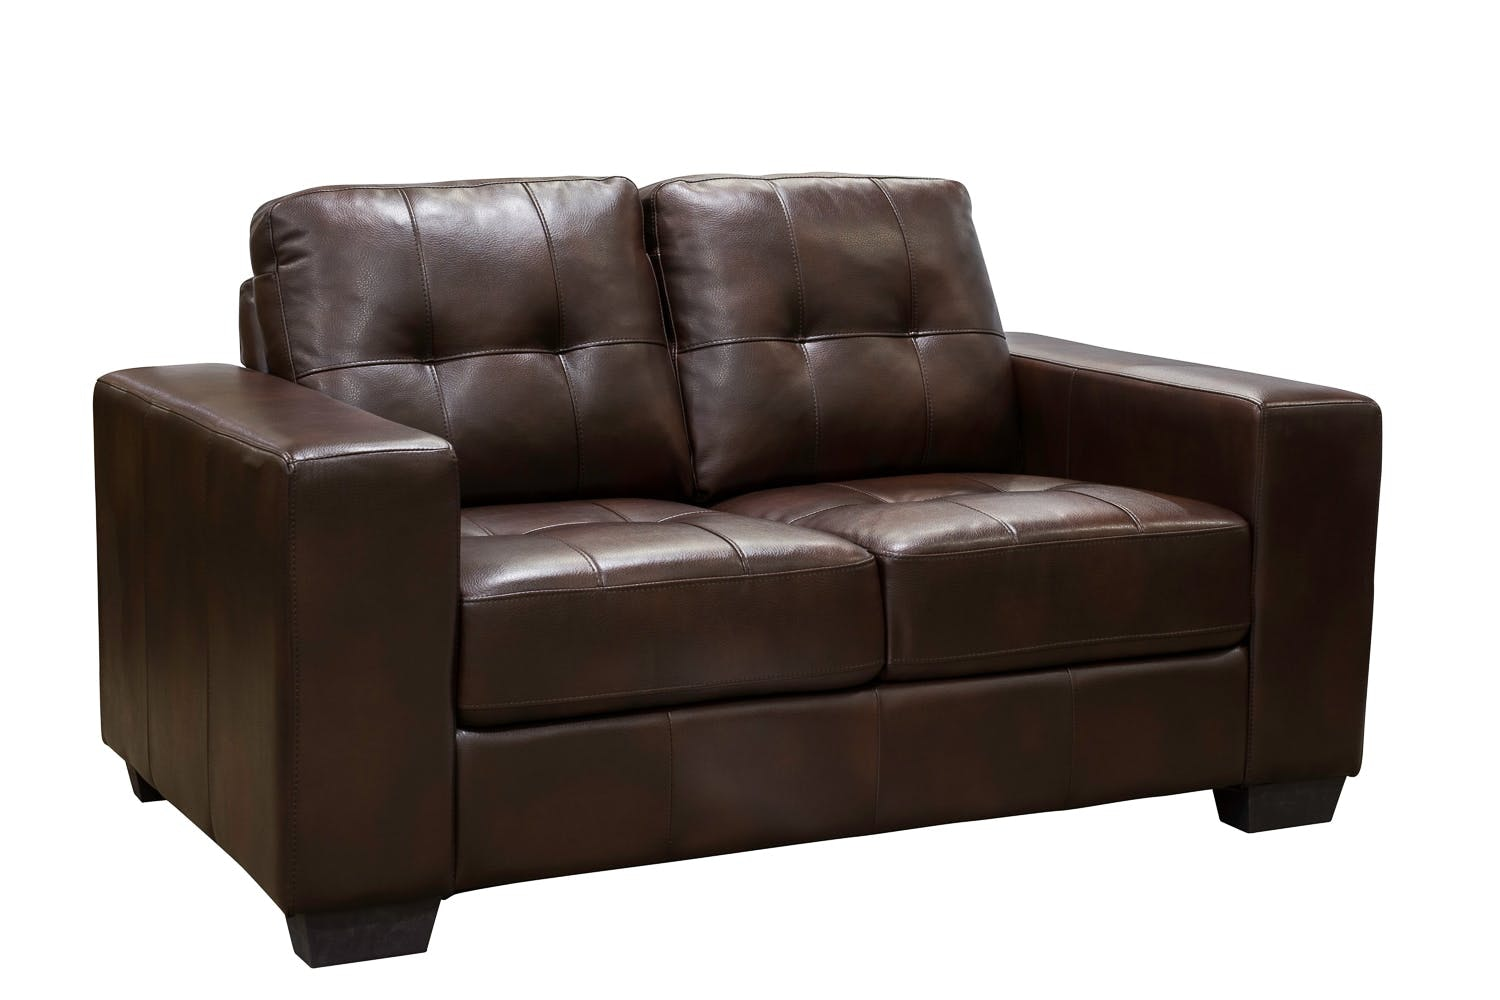 Caruba 2-Seater Sofa | Brown